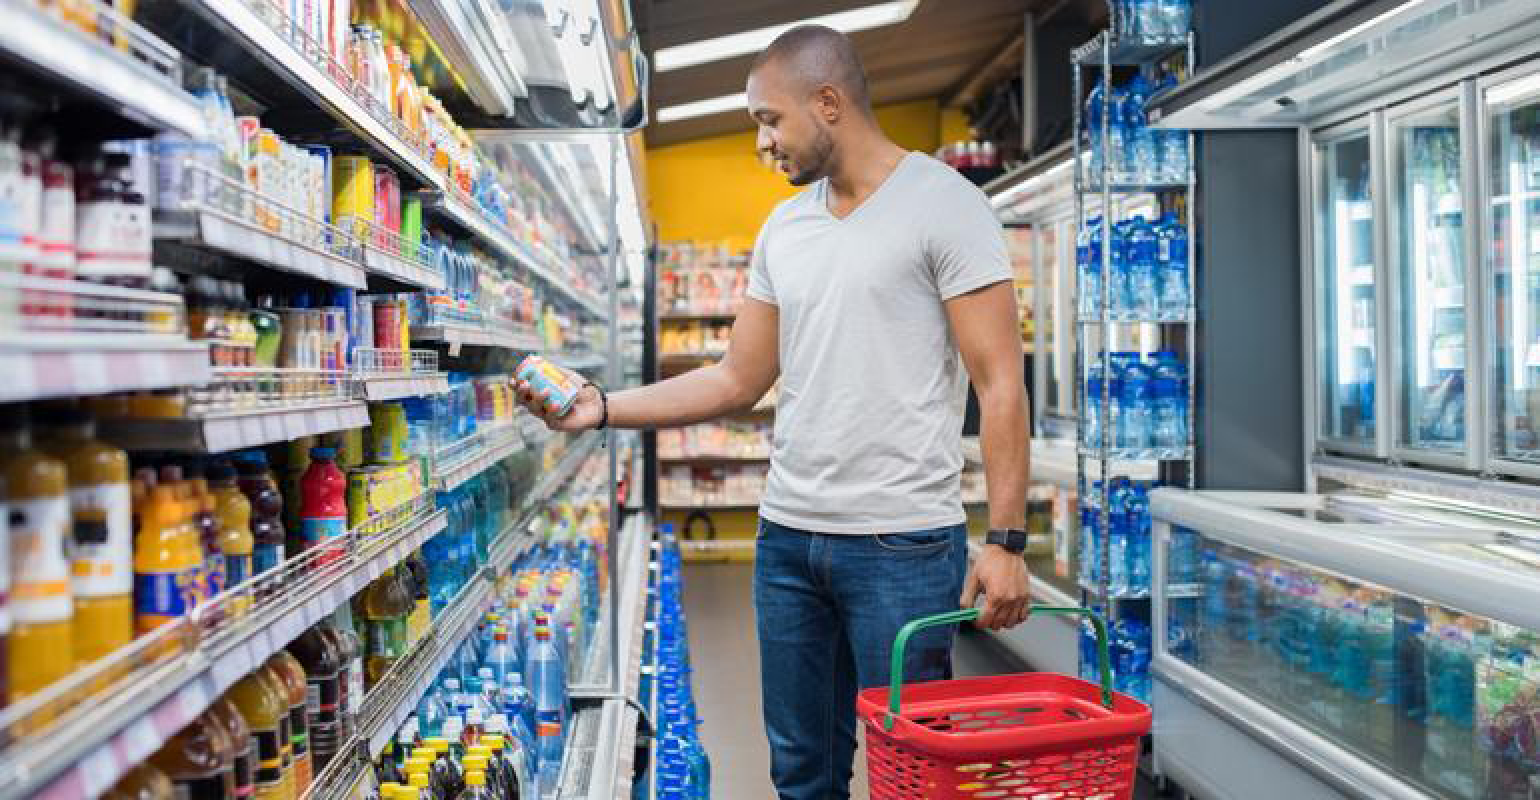 Supermarkets surpass discounters in shopping experience | Supermarket News